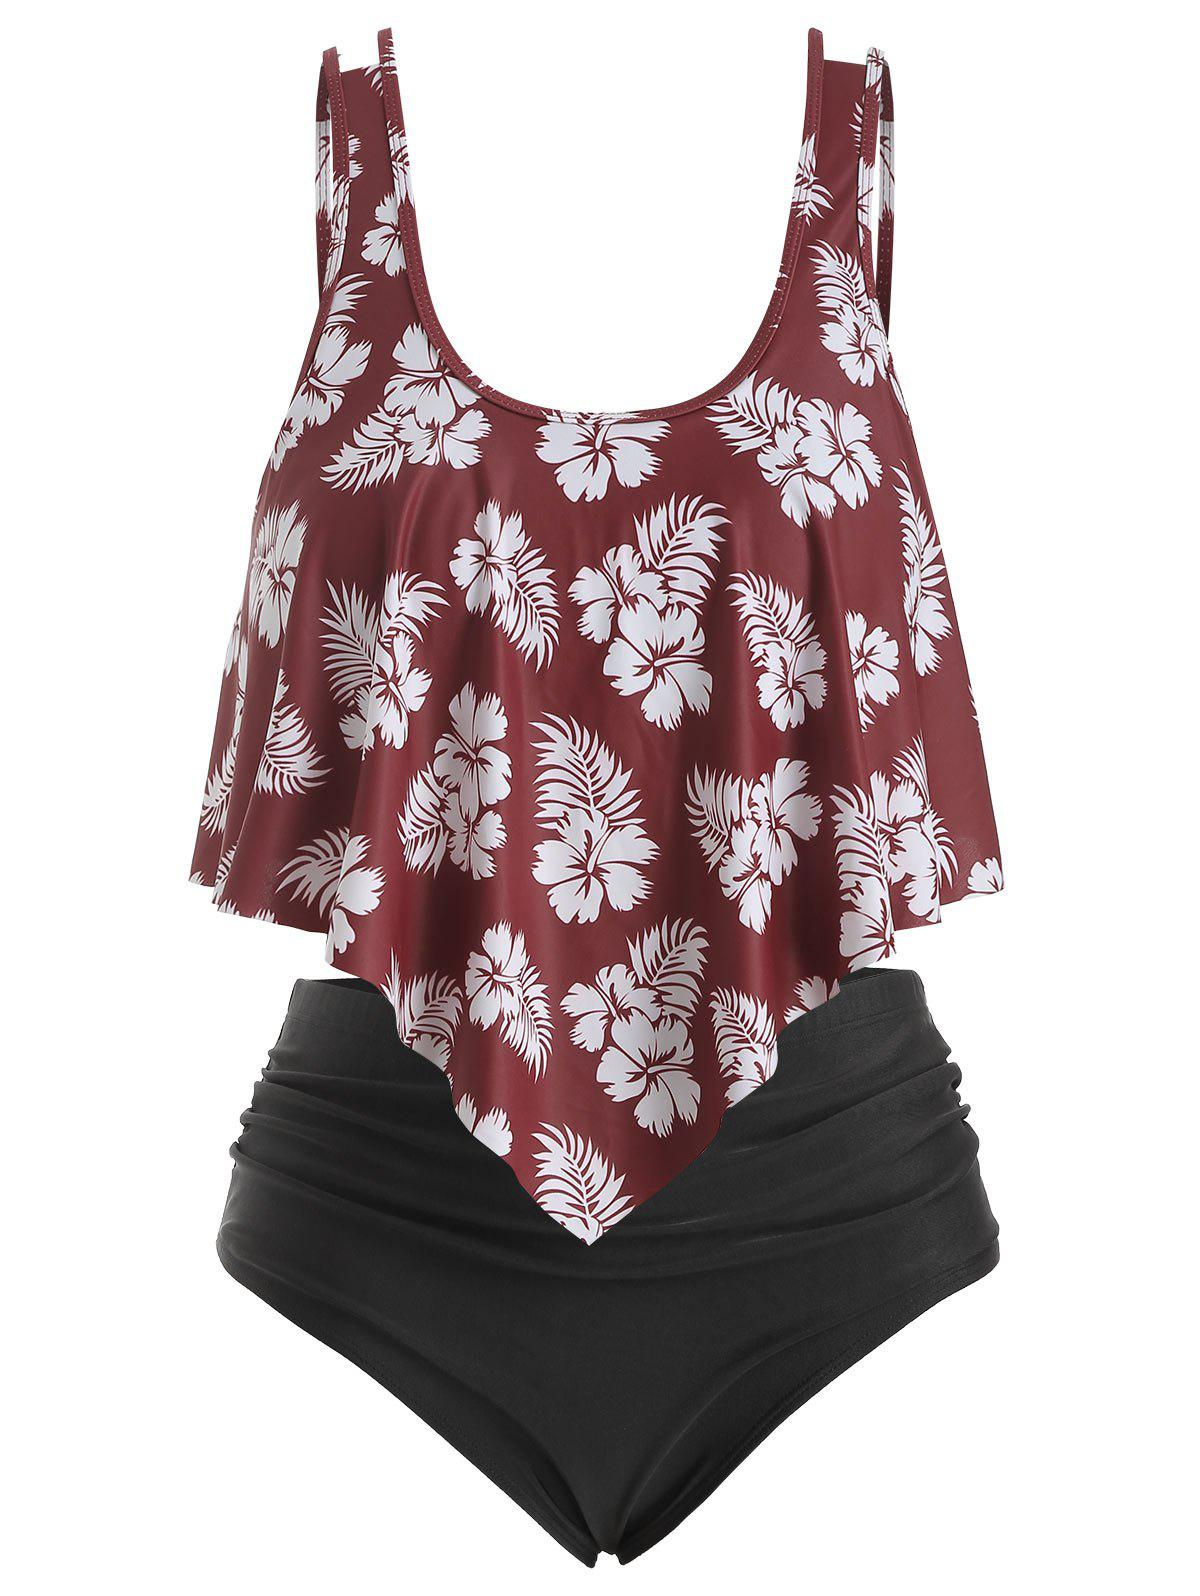 Cheap Overlay Ruffles Floral Leaves Print Plus Size Tankini Swimsuit